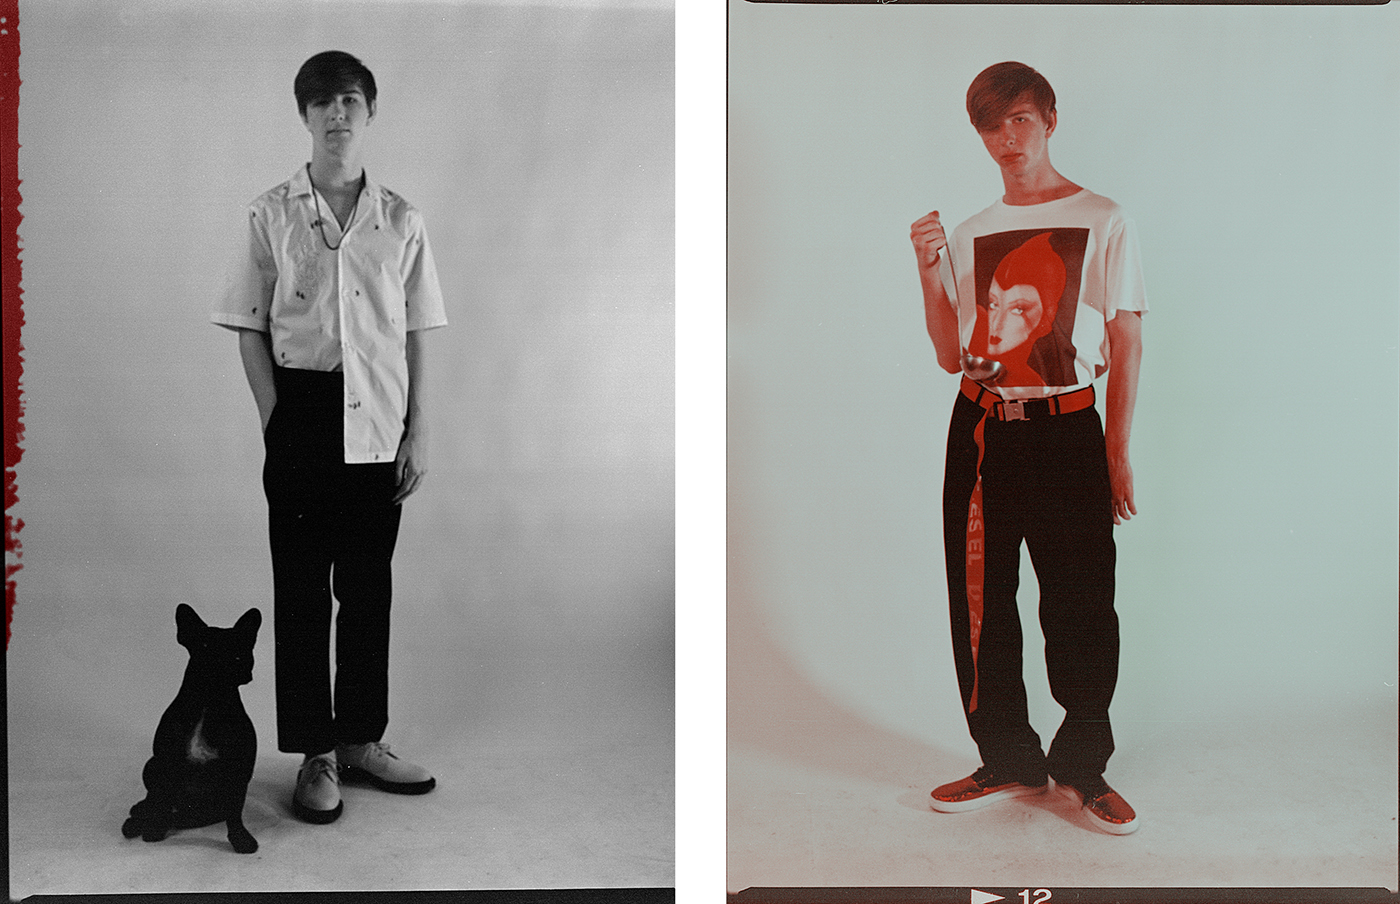 Left: Shirt by Salvatore Ferragamo. T-shirt by Topman. Trousers by McQ. Shoes by Dr. Martens. Necklace, talent's own.Right: All clothing by Stella McCartney. Belt by Diesel. Sneakers by Ports 1961.